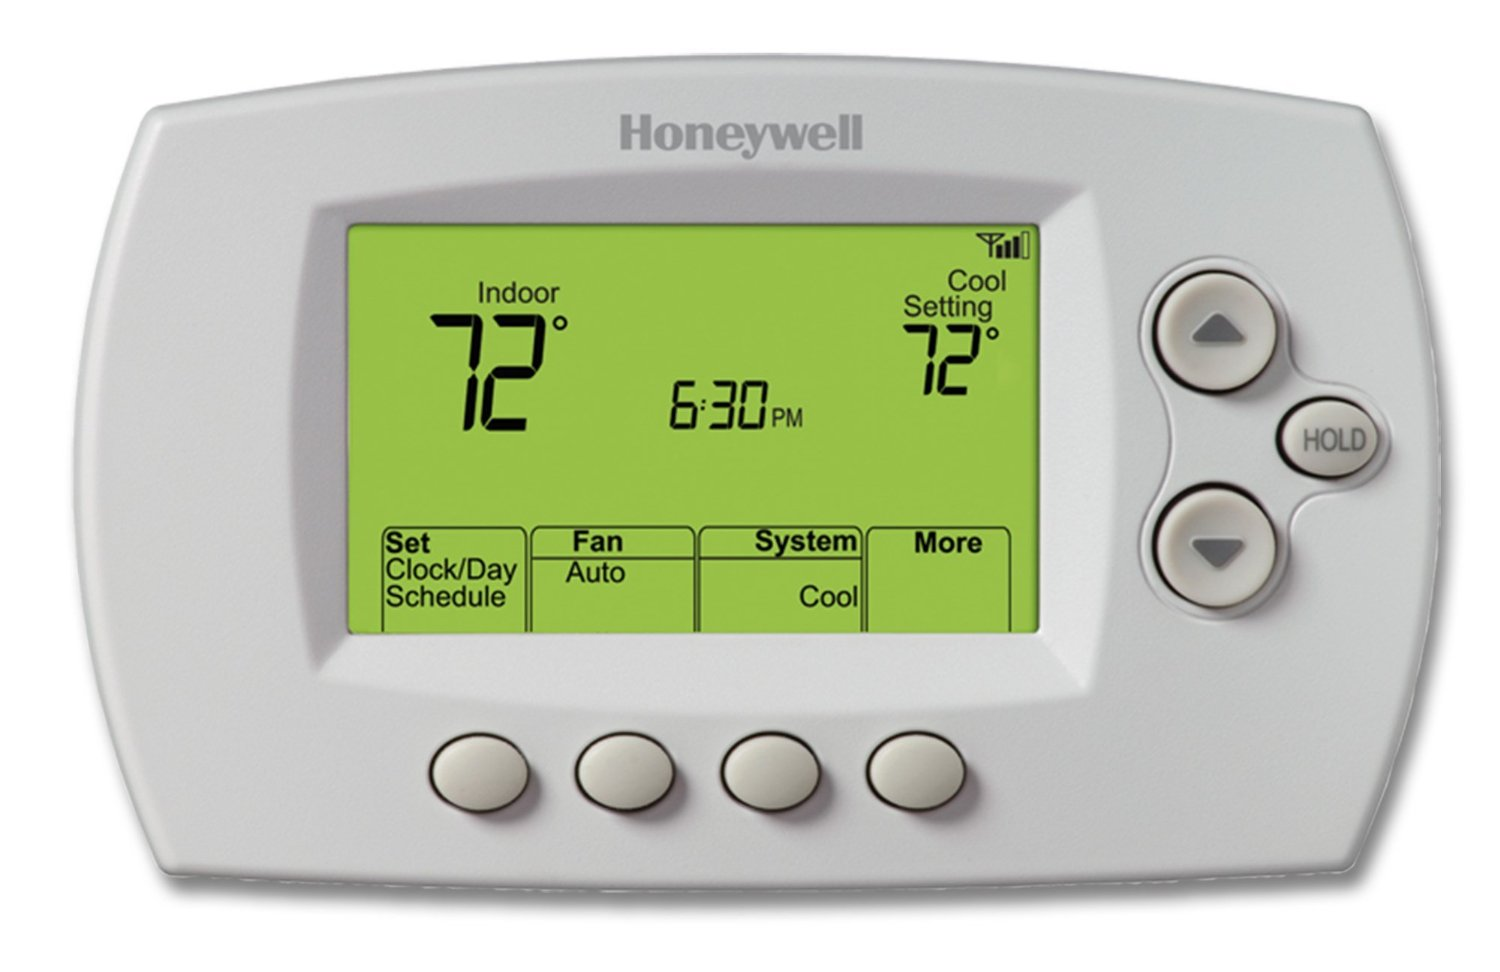 Honeywell RTH6580WF Wi-Fi Programmable Thermostat Review